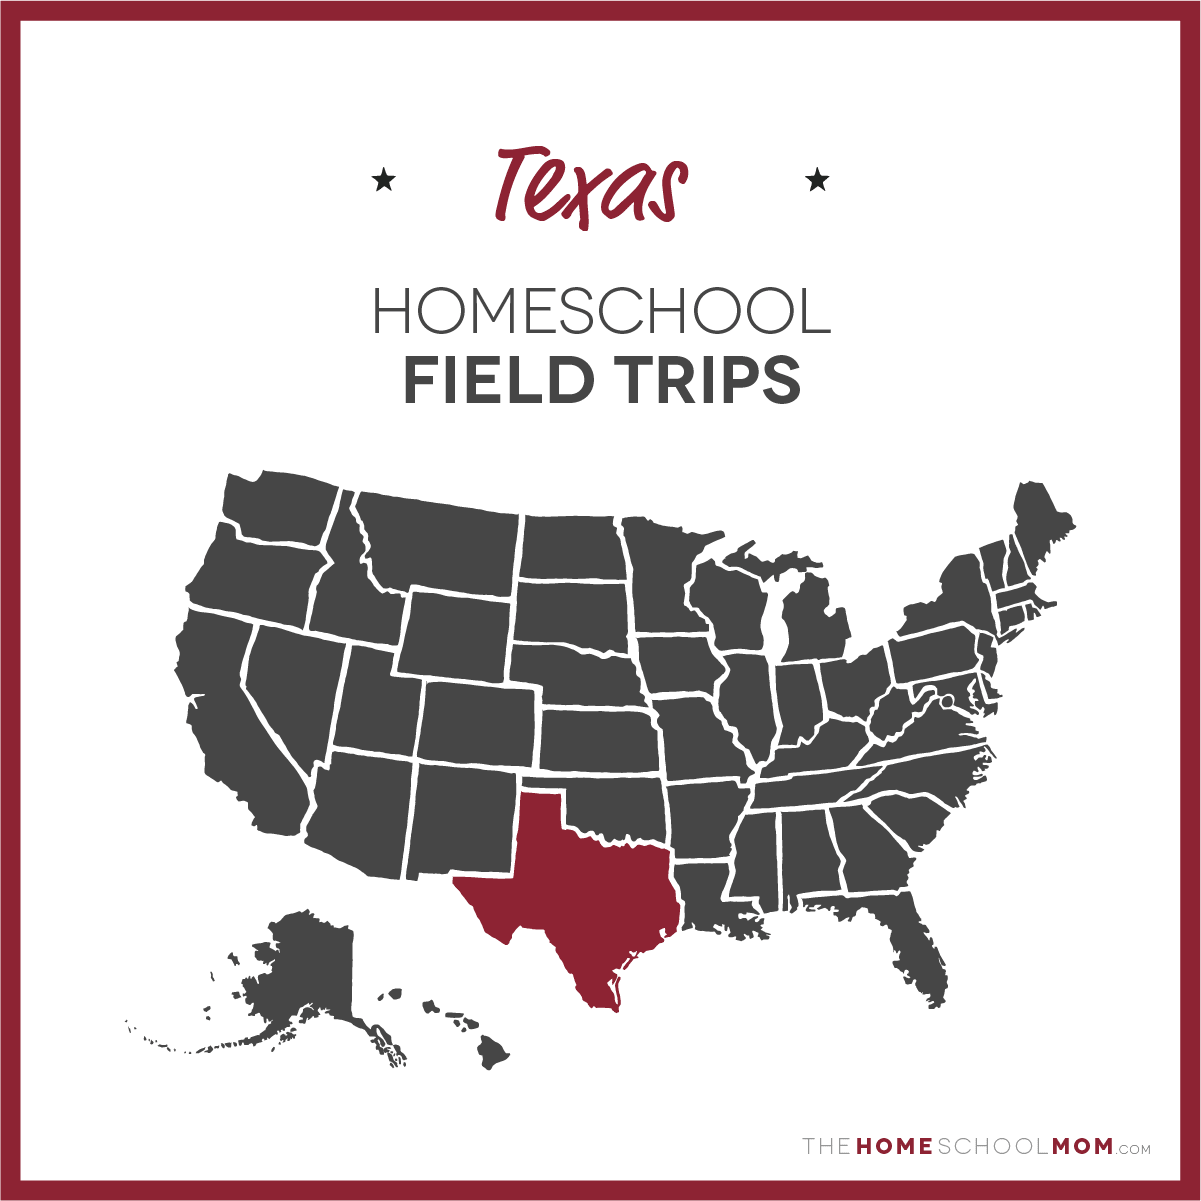 map of the US with Texas highlighted and text Texas Homeschool Field Trips